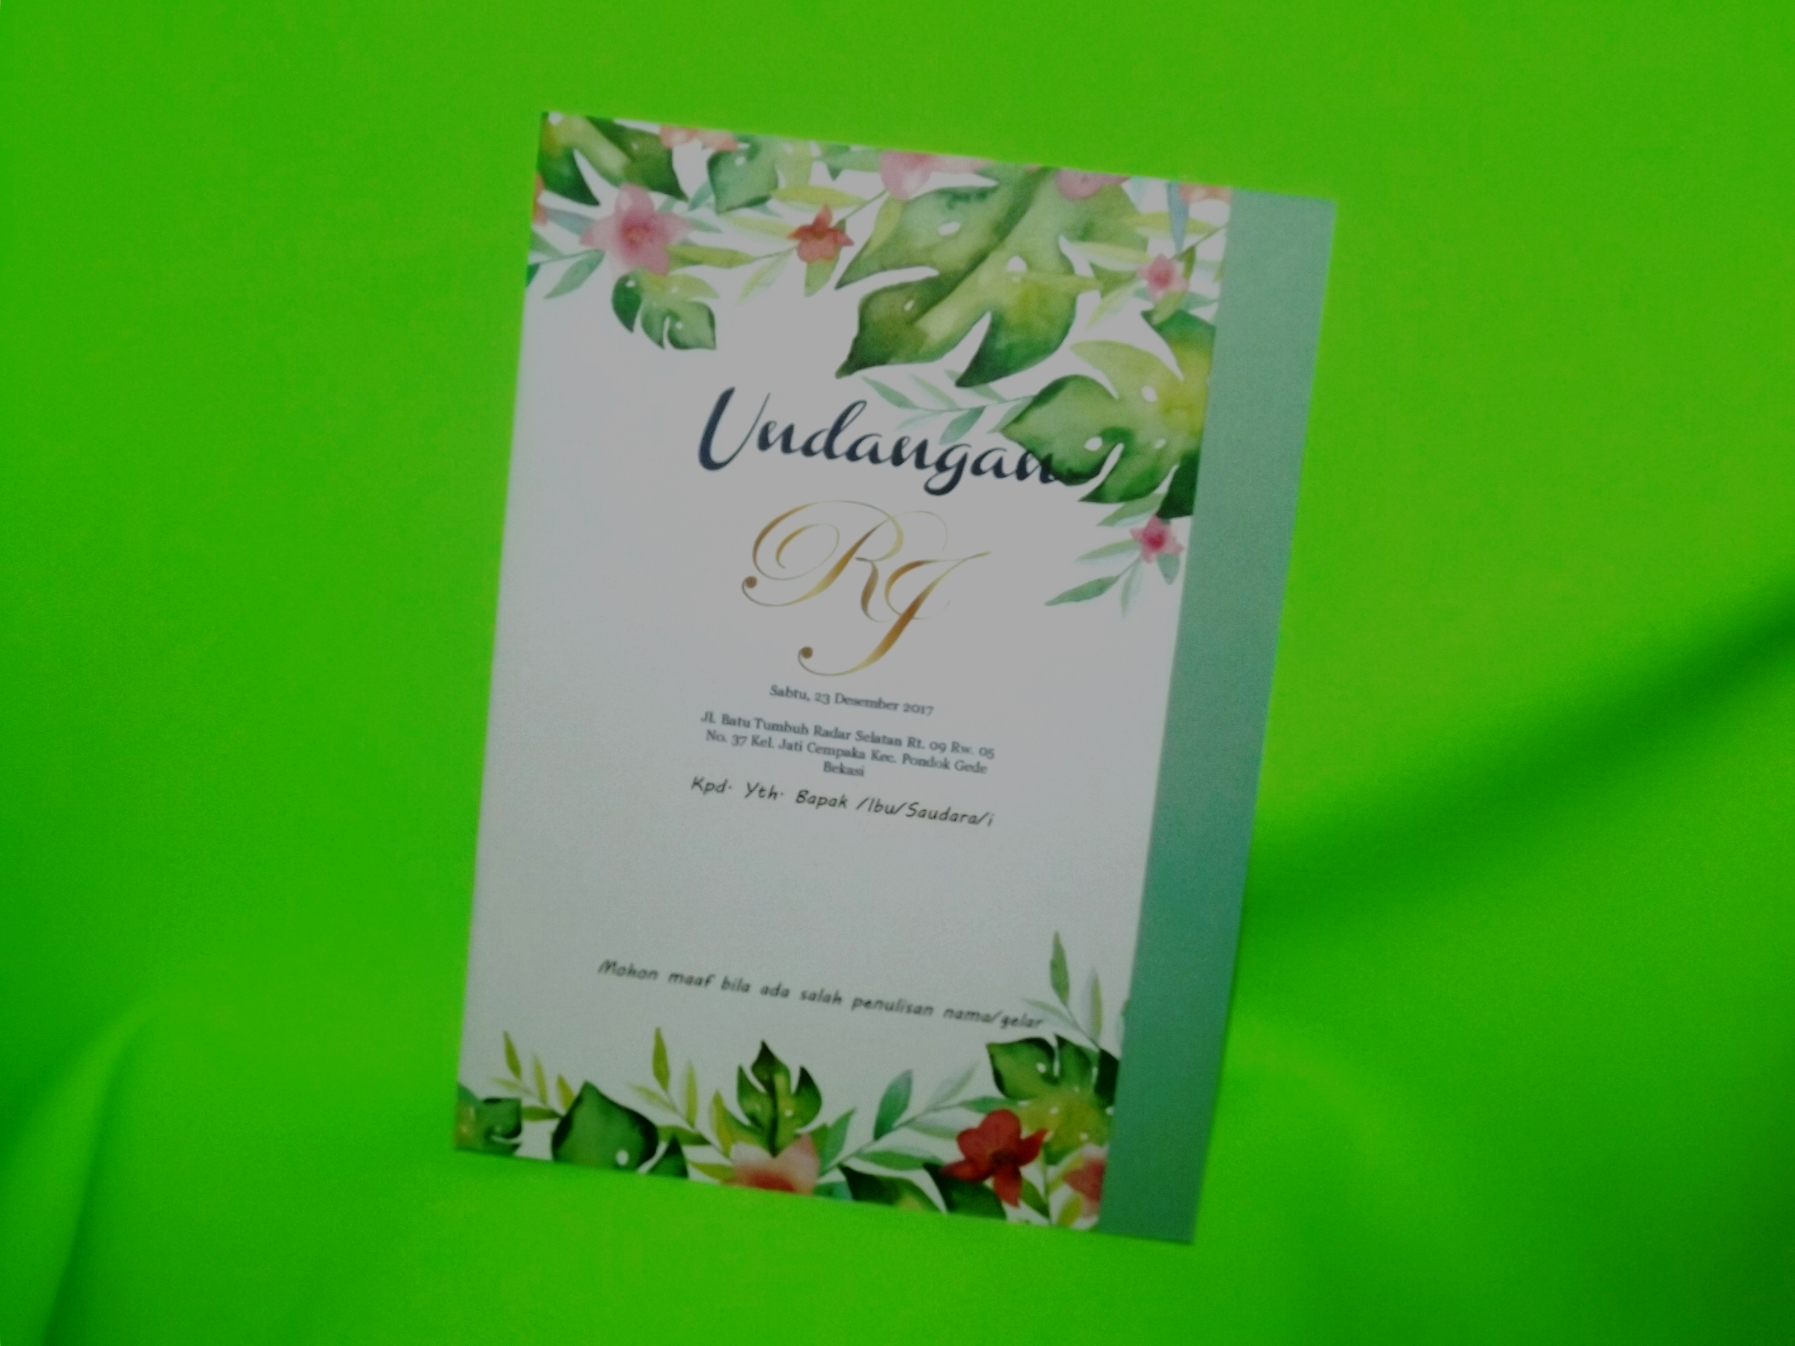 Undangan Pernikahan Three Diamonds Card Wedding Invitations